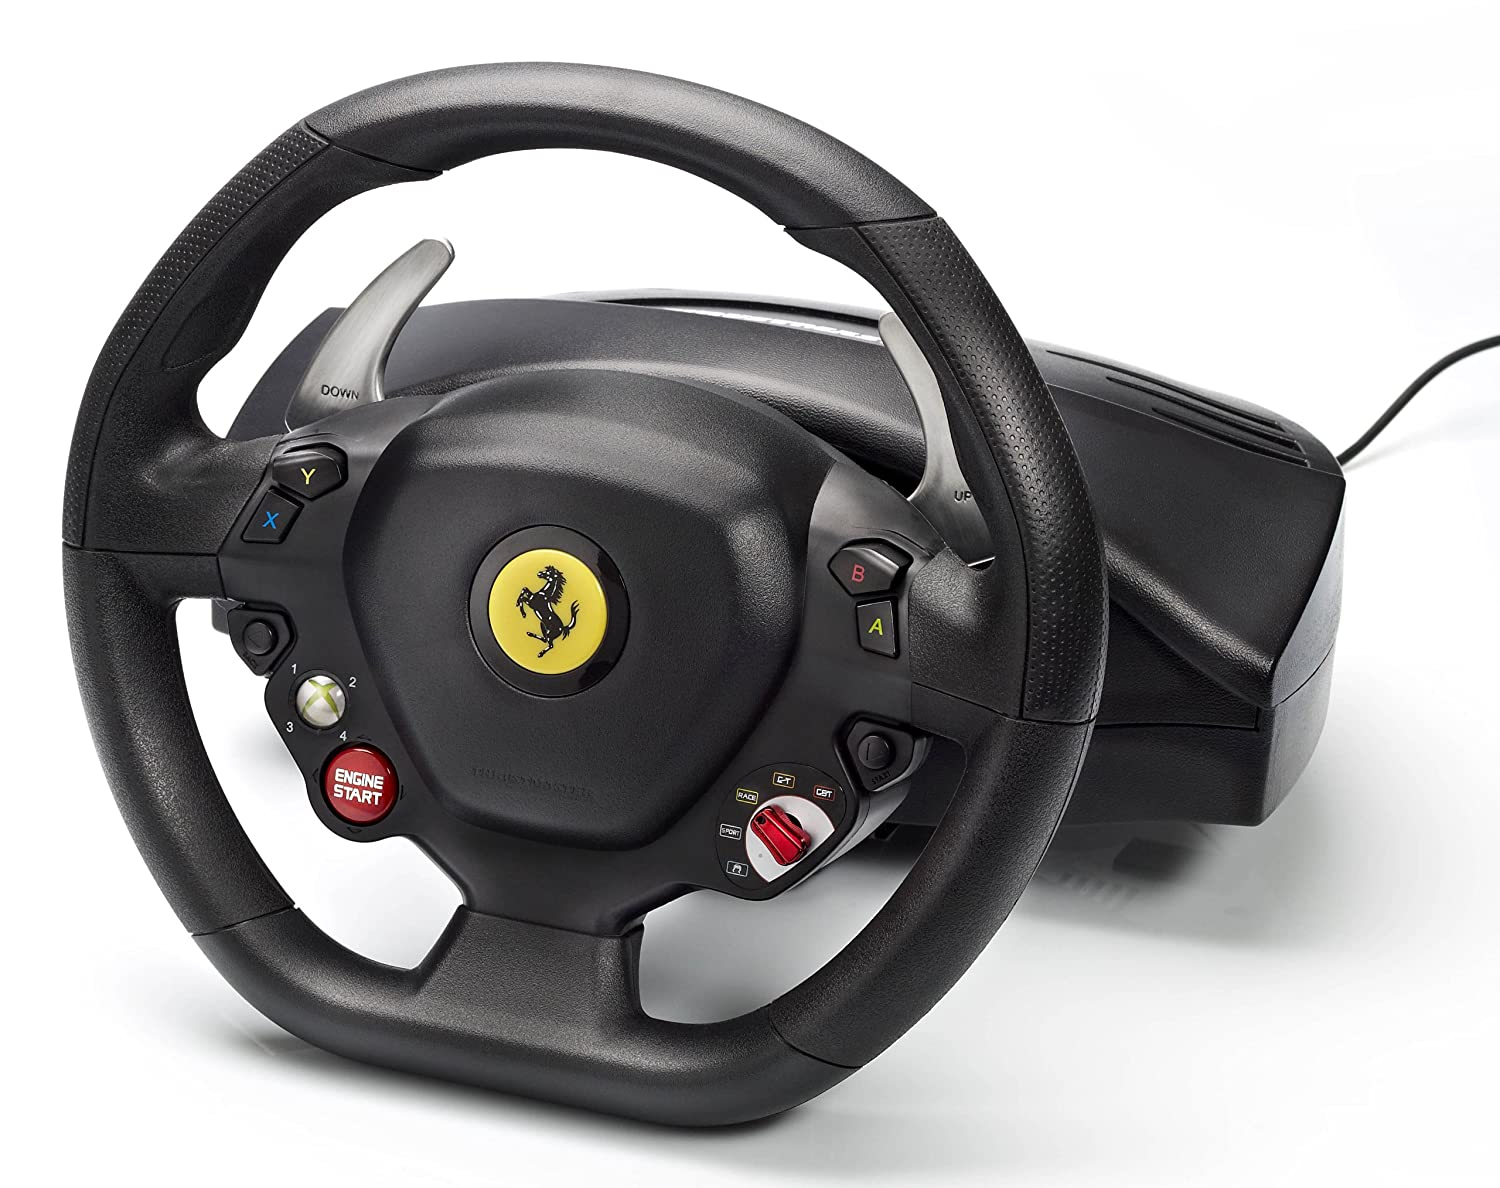 thustmaster xbox pedal port ifixit ferrari thrustmaster spider device wheel connection and racing